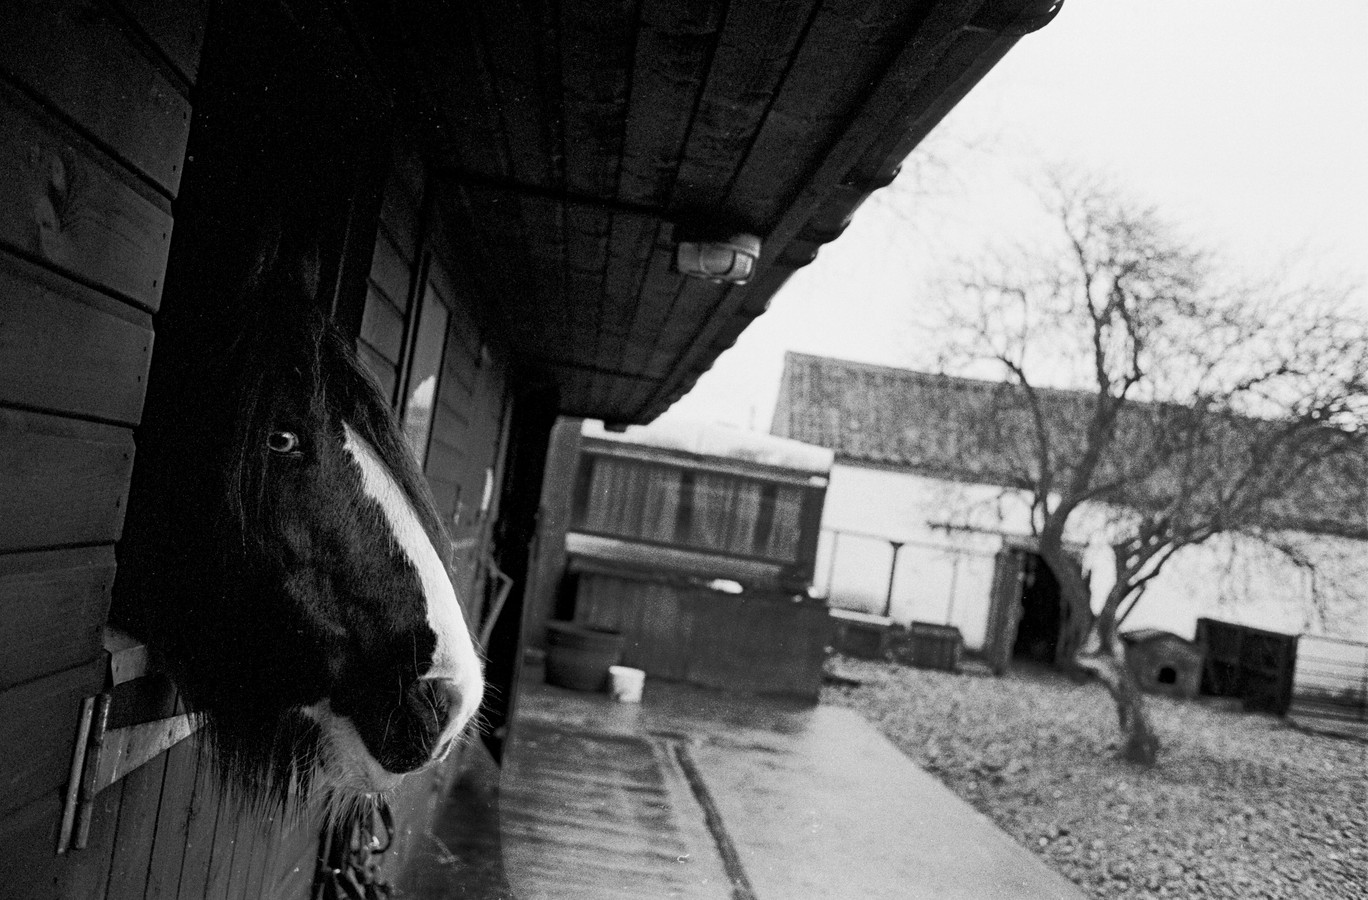 Waiting in the stable